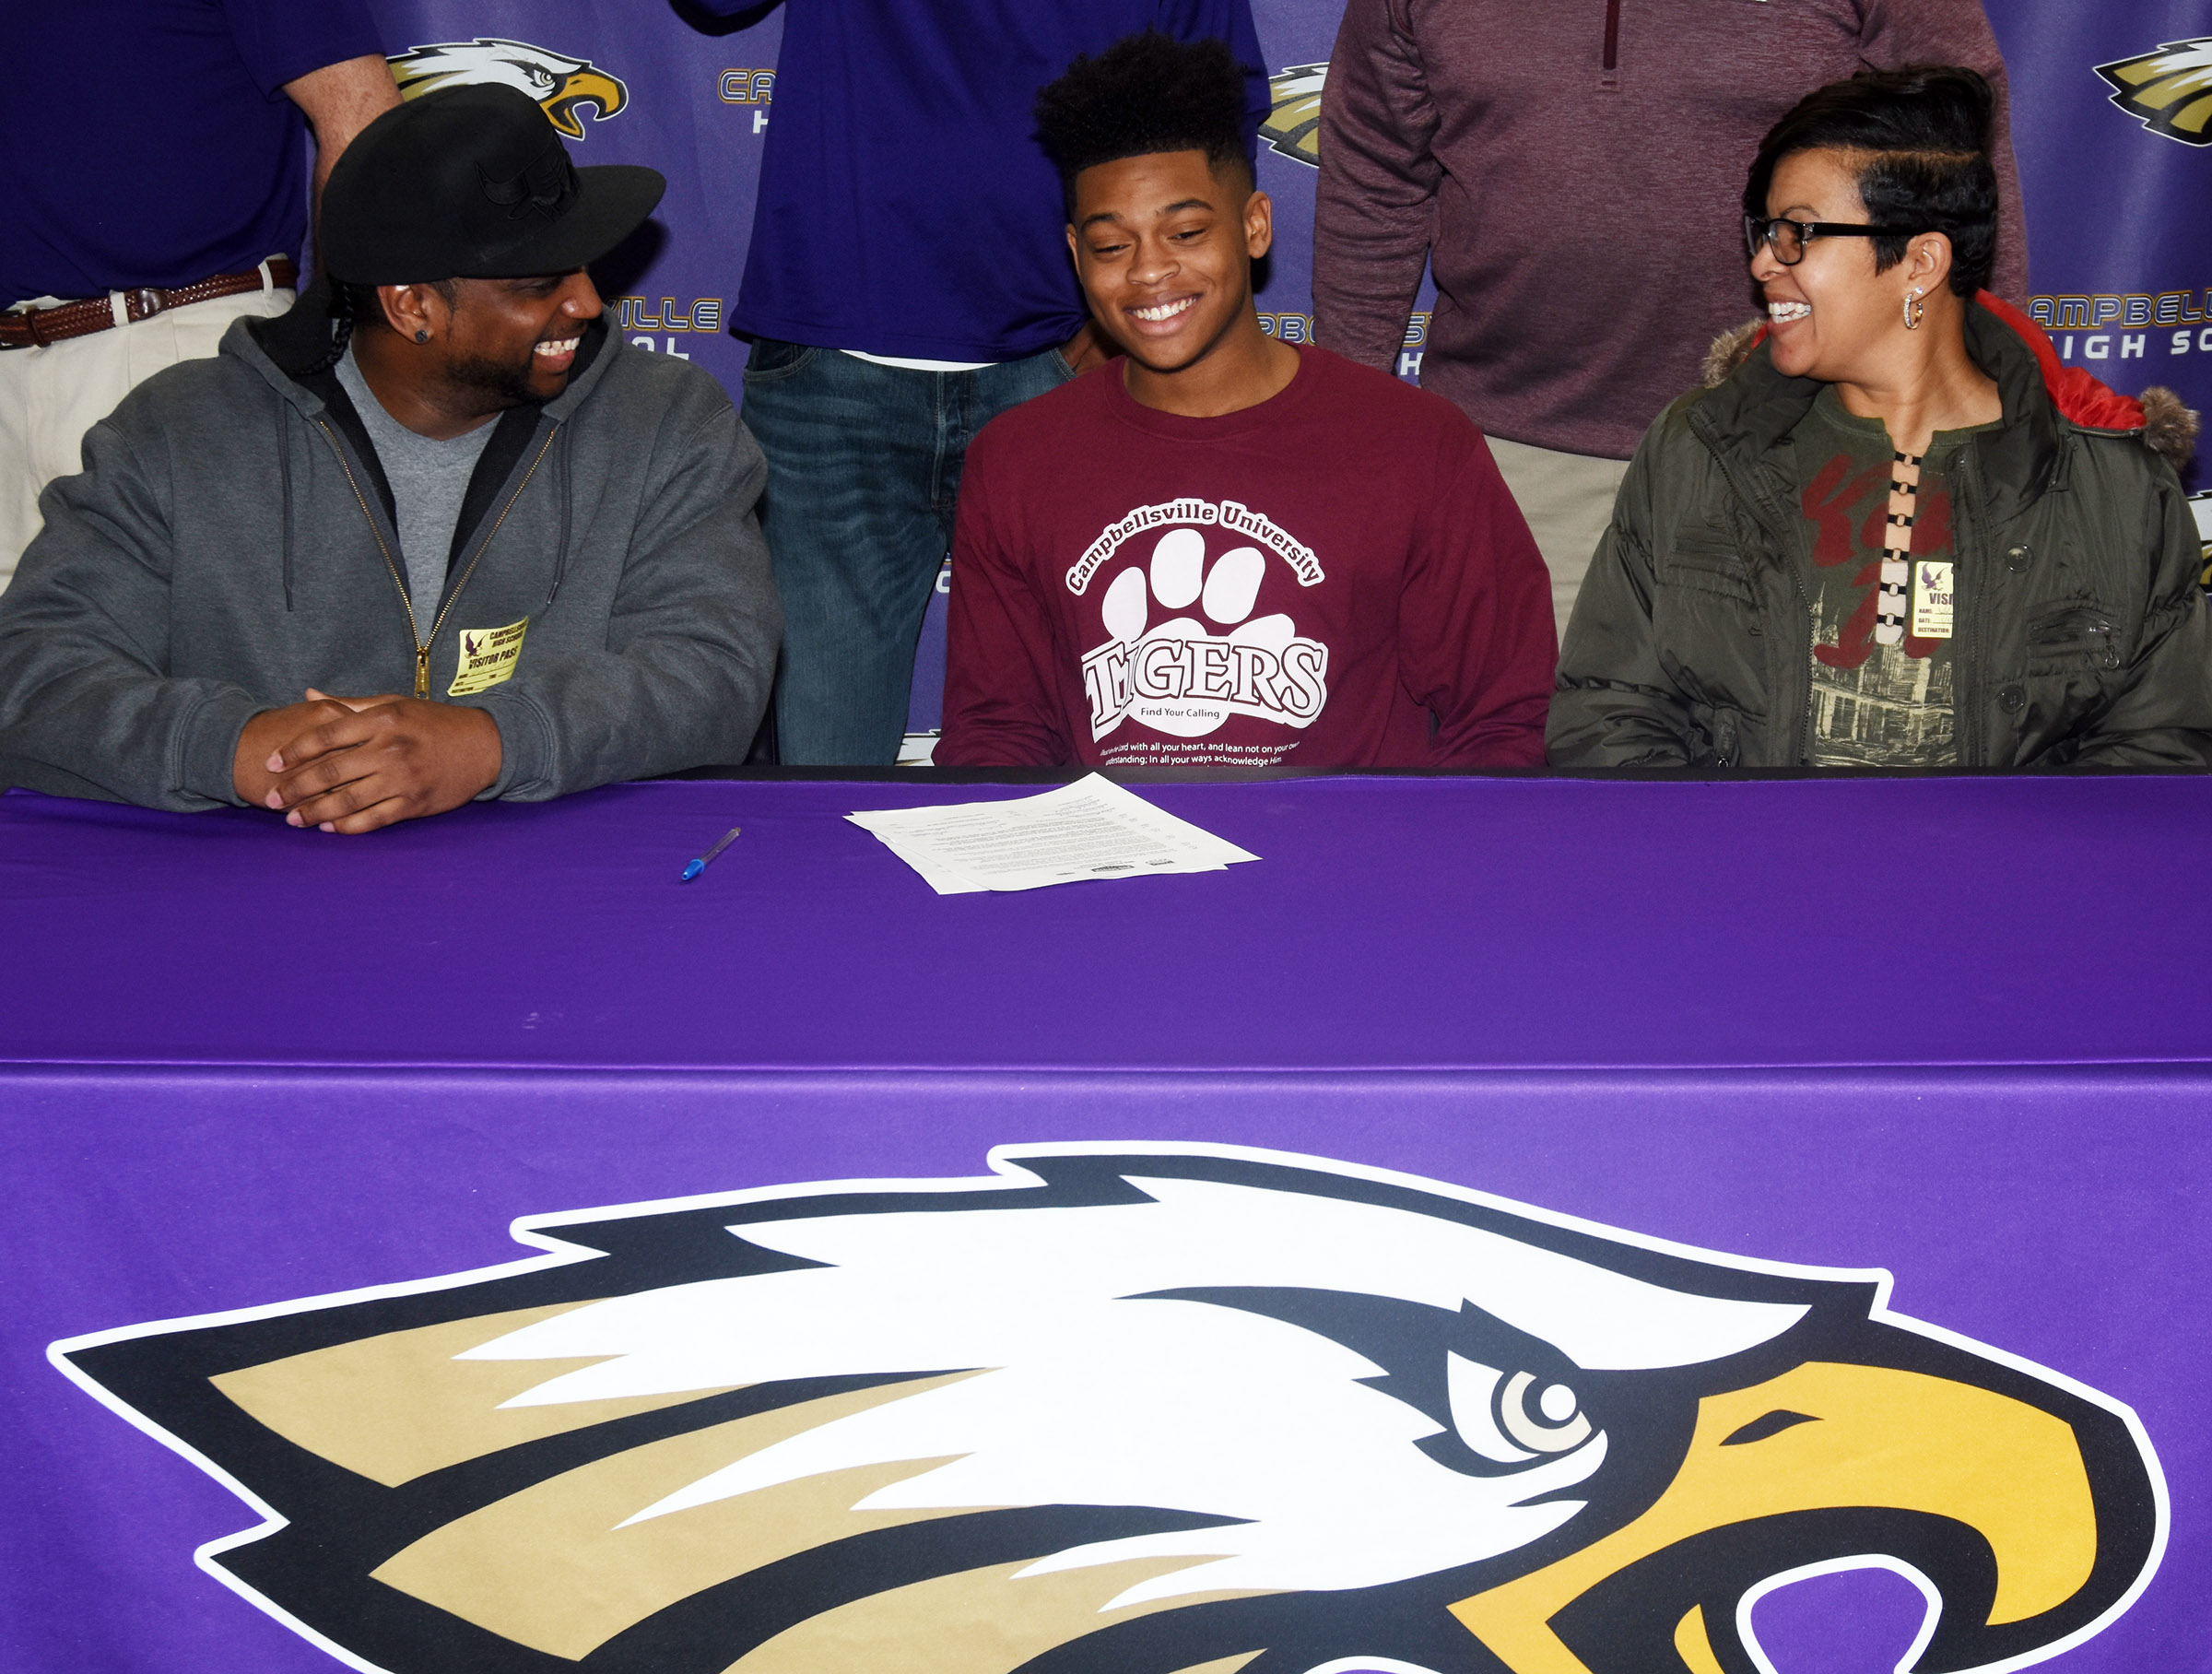 CHS senior Devonte Cubit has signed to play football at Campbellsville University. He recently signed his letter of intent in a special ceremony with his family members, friends and teammates. Pictured with him are his parents, Nate Cubit and Robin Ford.